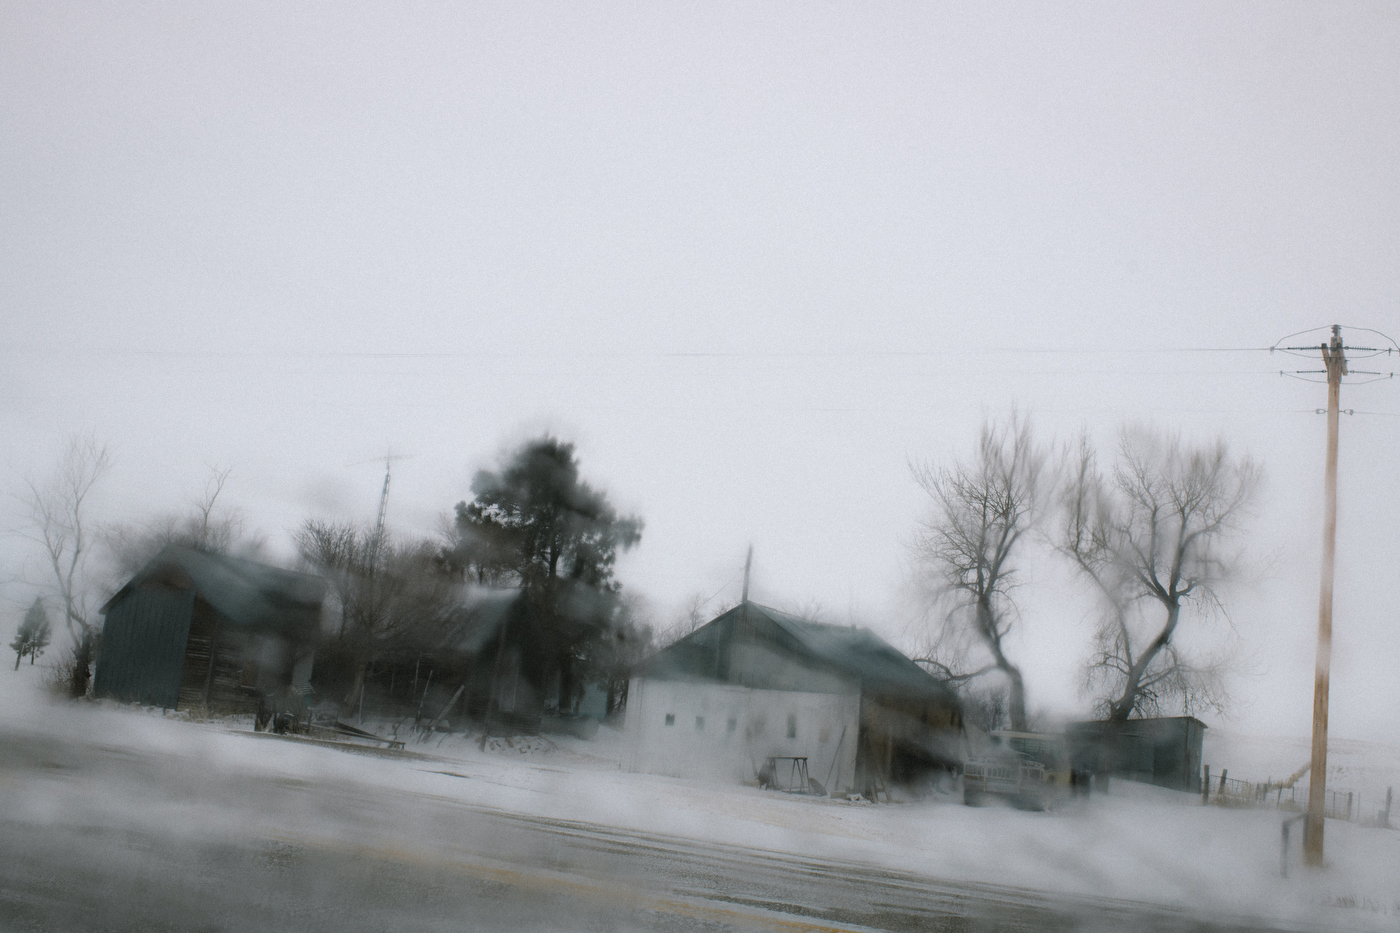 """45º31'48.9""""N 102º12'59.8""""W. 123 miles from the nearest McDonald's.  A derelict ranch, neglected for 7 months after it's owner died last July, is seen through the icy window of a car after an early-spring snowstorm in Meadow, SD on April 8, 2018. Perkins County has lost 74% of its population since 1910 and in the past 7 months, four residents of Meadow have died, lowering the population by 11% in less than a year."""